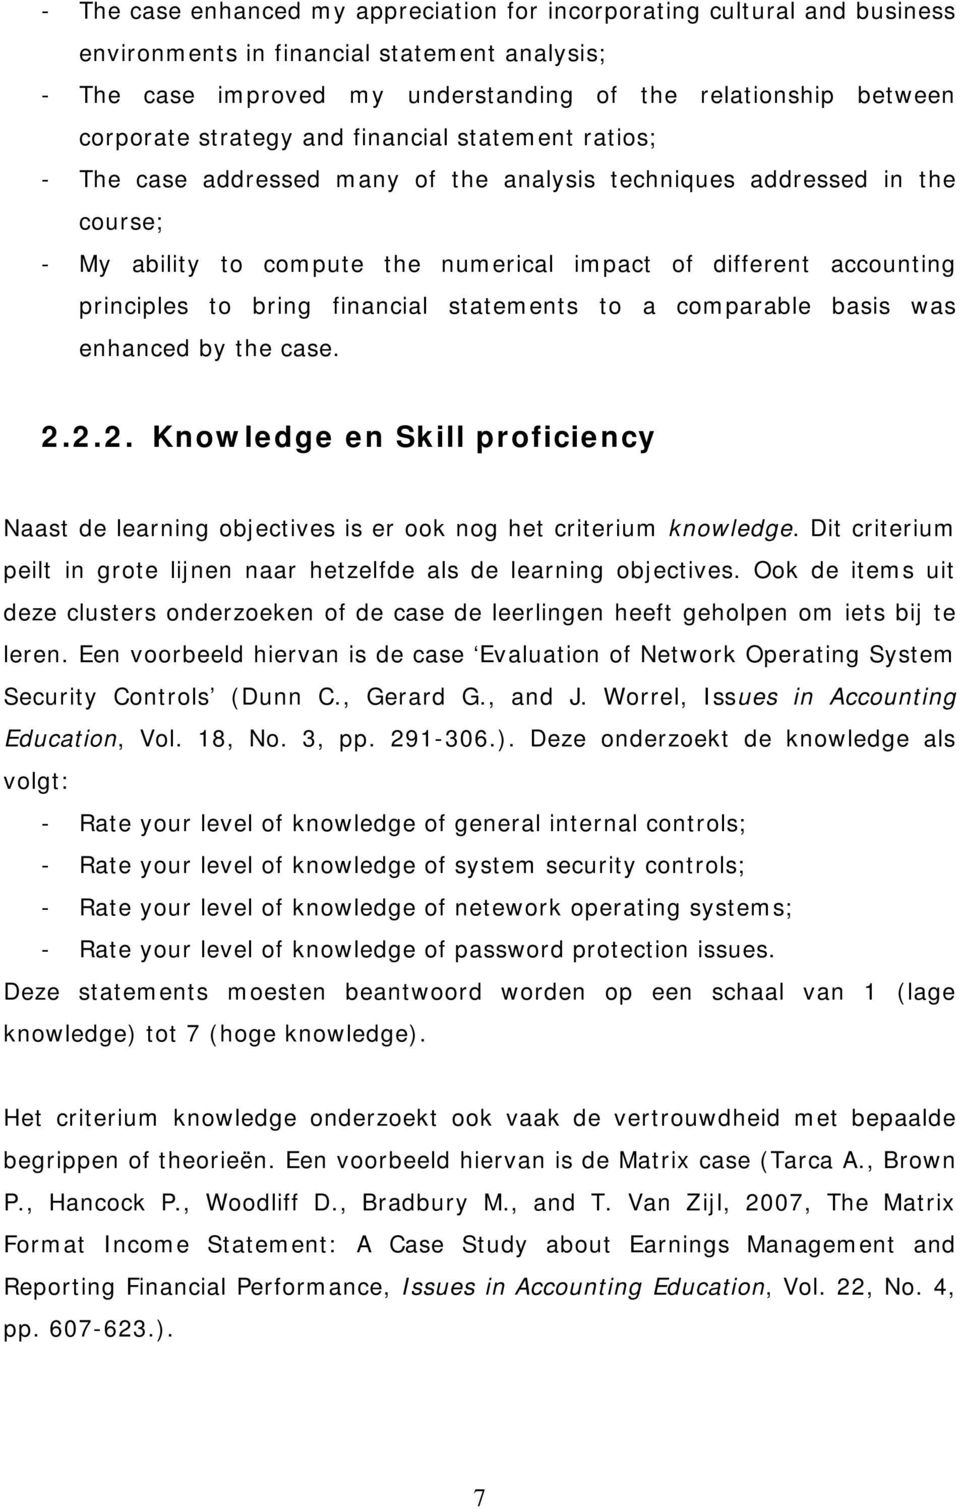 to bring financial statements to a comparable basis was enhanced by the case. 2.2.2. Knowledge en Skill proficiency Naast de learning objectives is er ook nog het criterium knowledge.